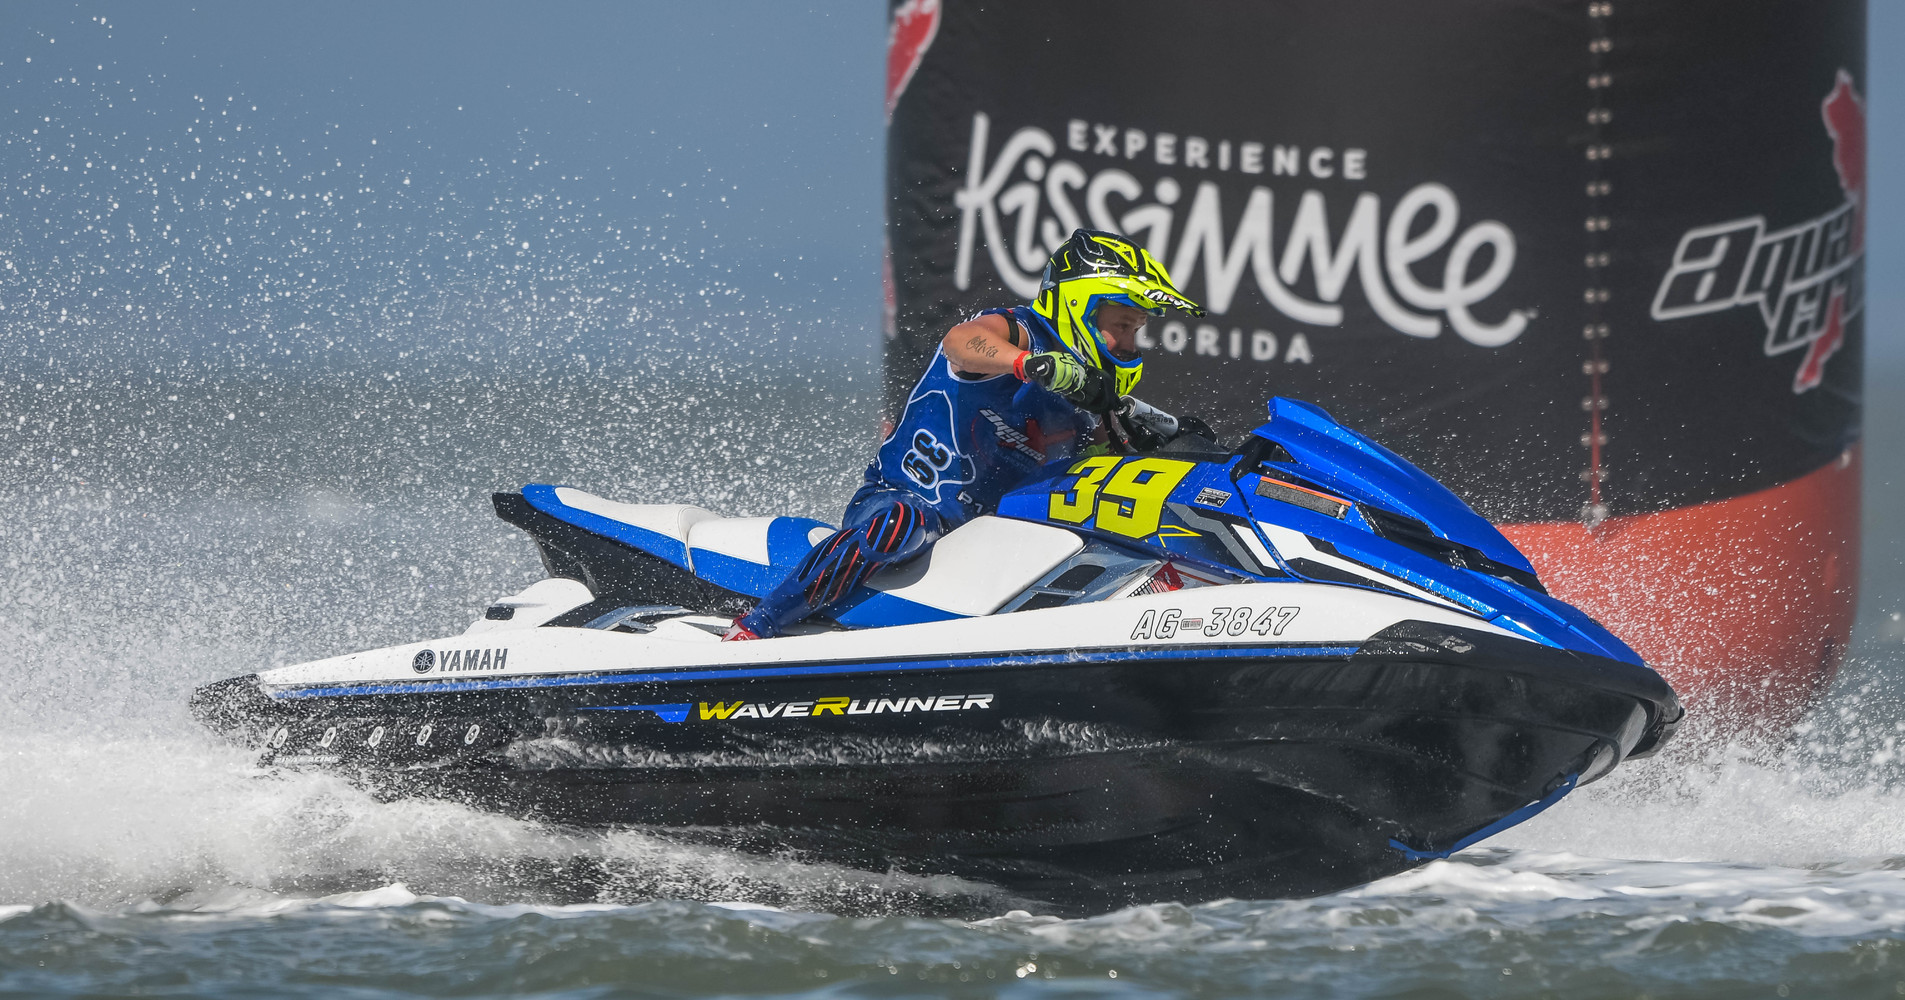 Yamaha SVHO FX qualifies for the 300 class